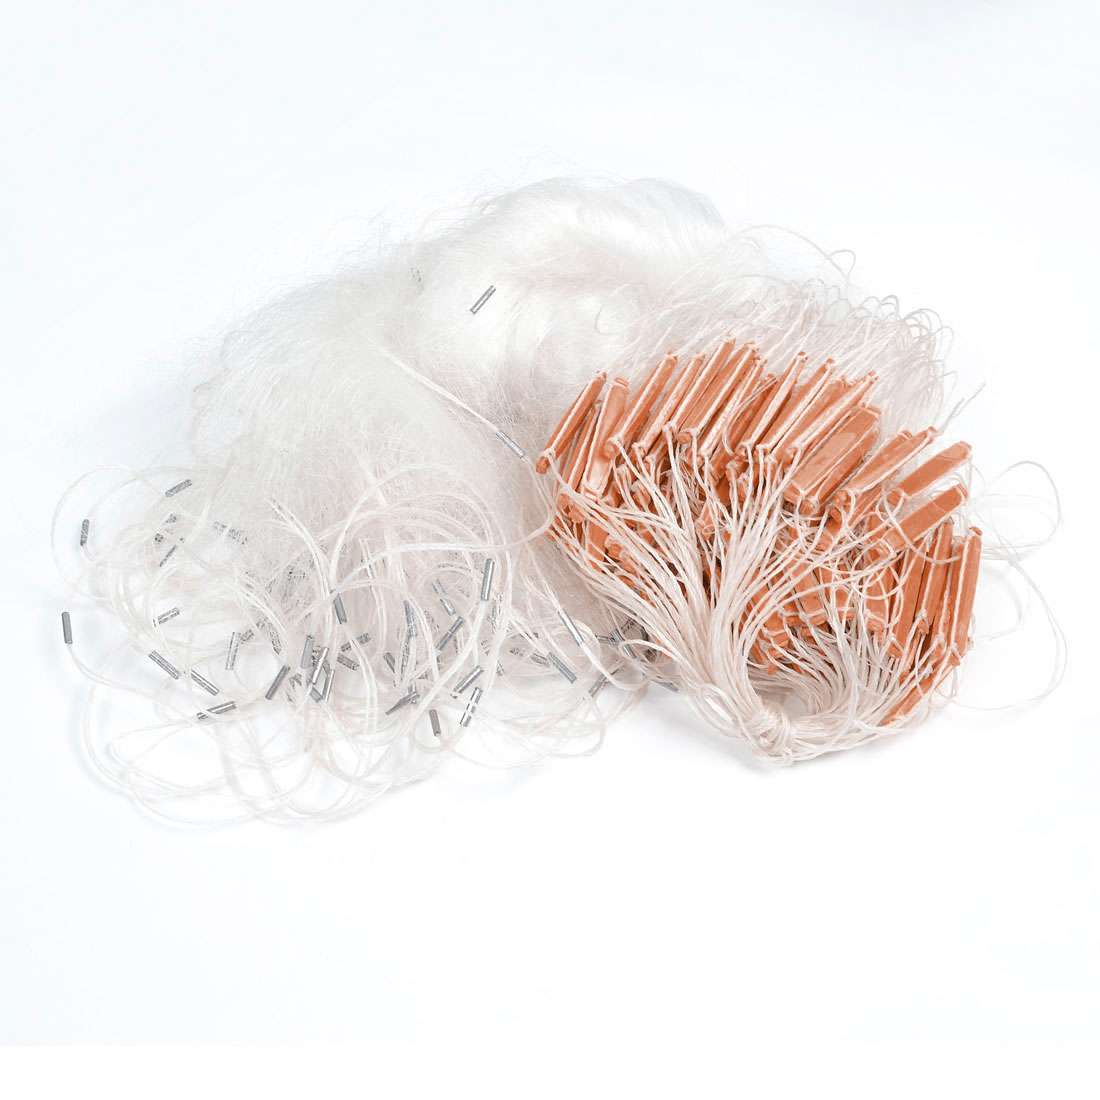 60M x 1.2M White Knotted Mesh Fishing Fish Gill Net for Fisherman